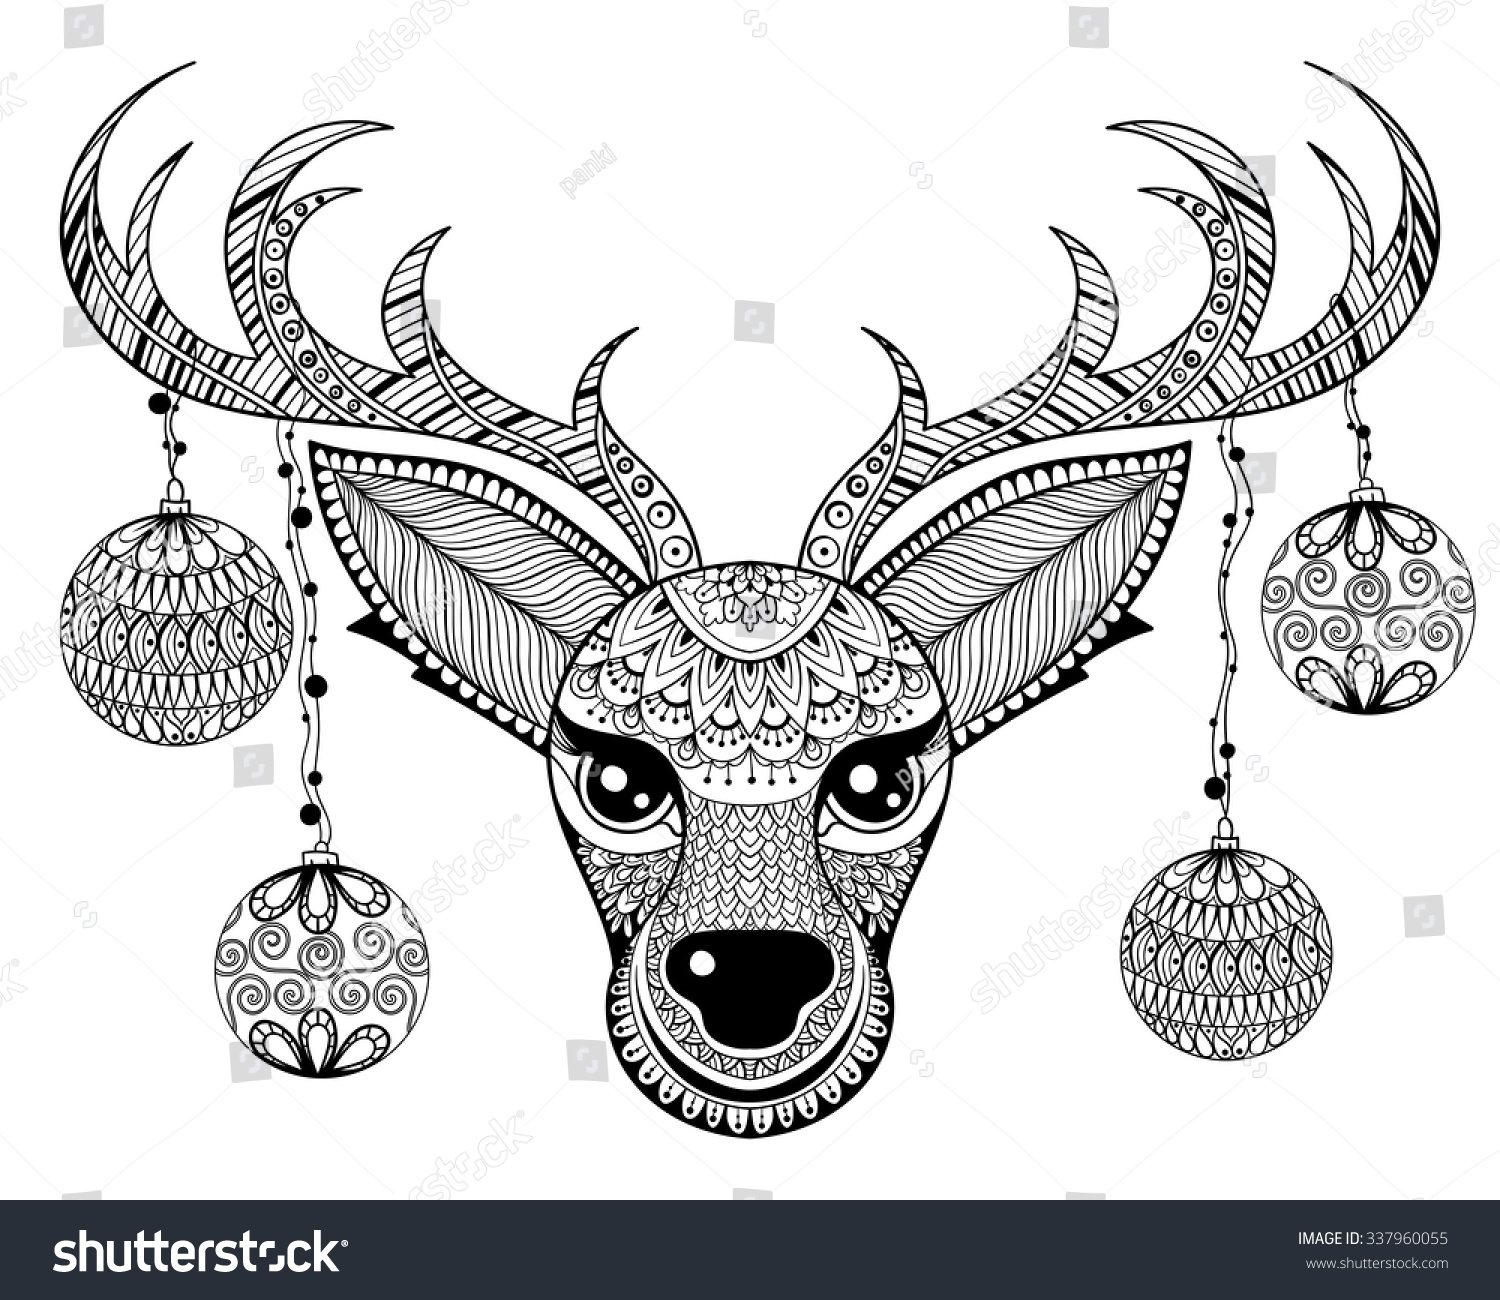 Zentangle Vector Reindeer Face Christmas Decoration Stock Vector ...